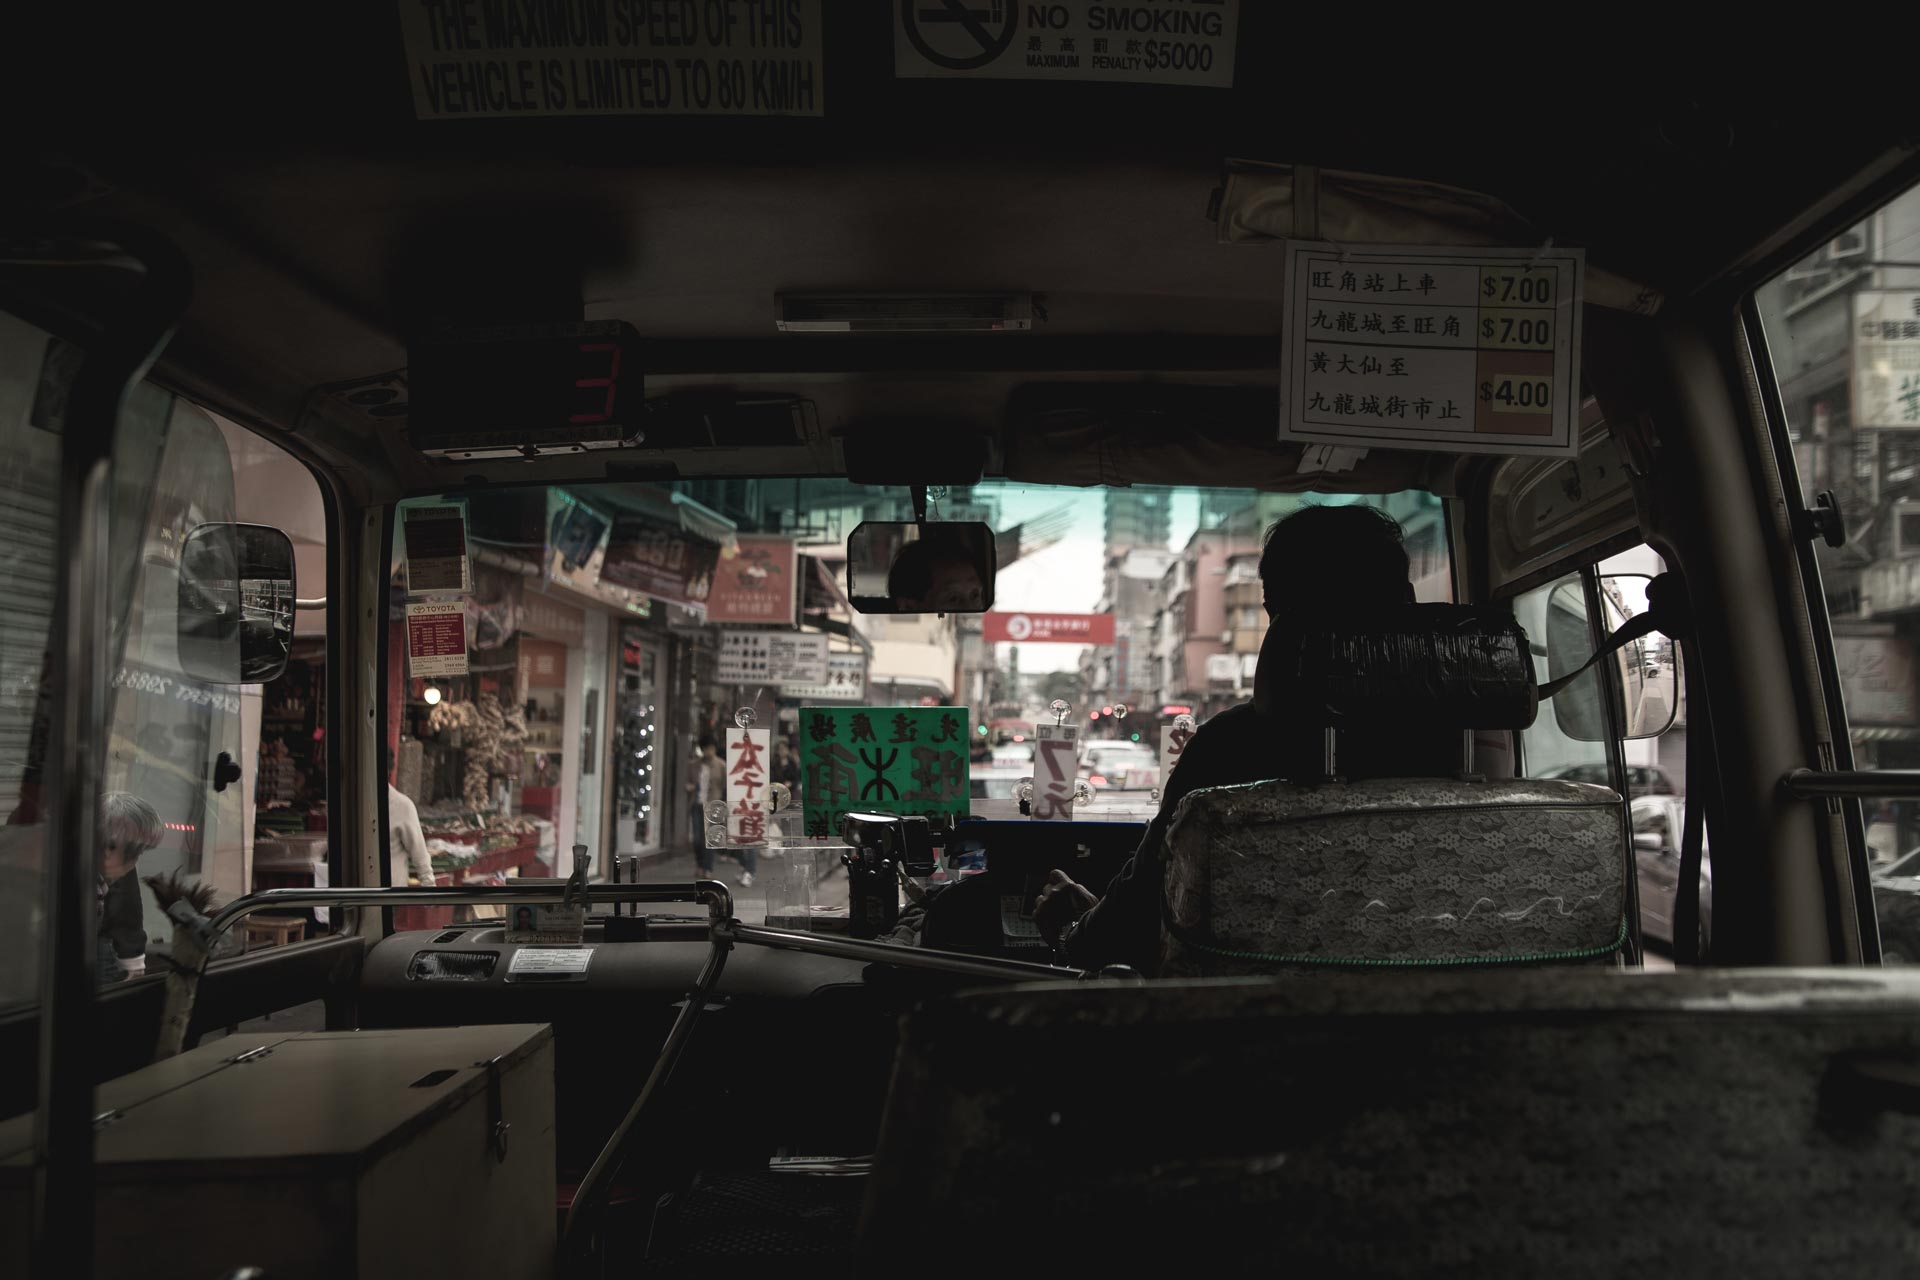 Inside a local minivan bus in Hong Kong